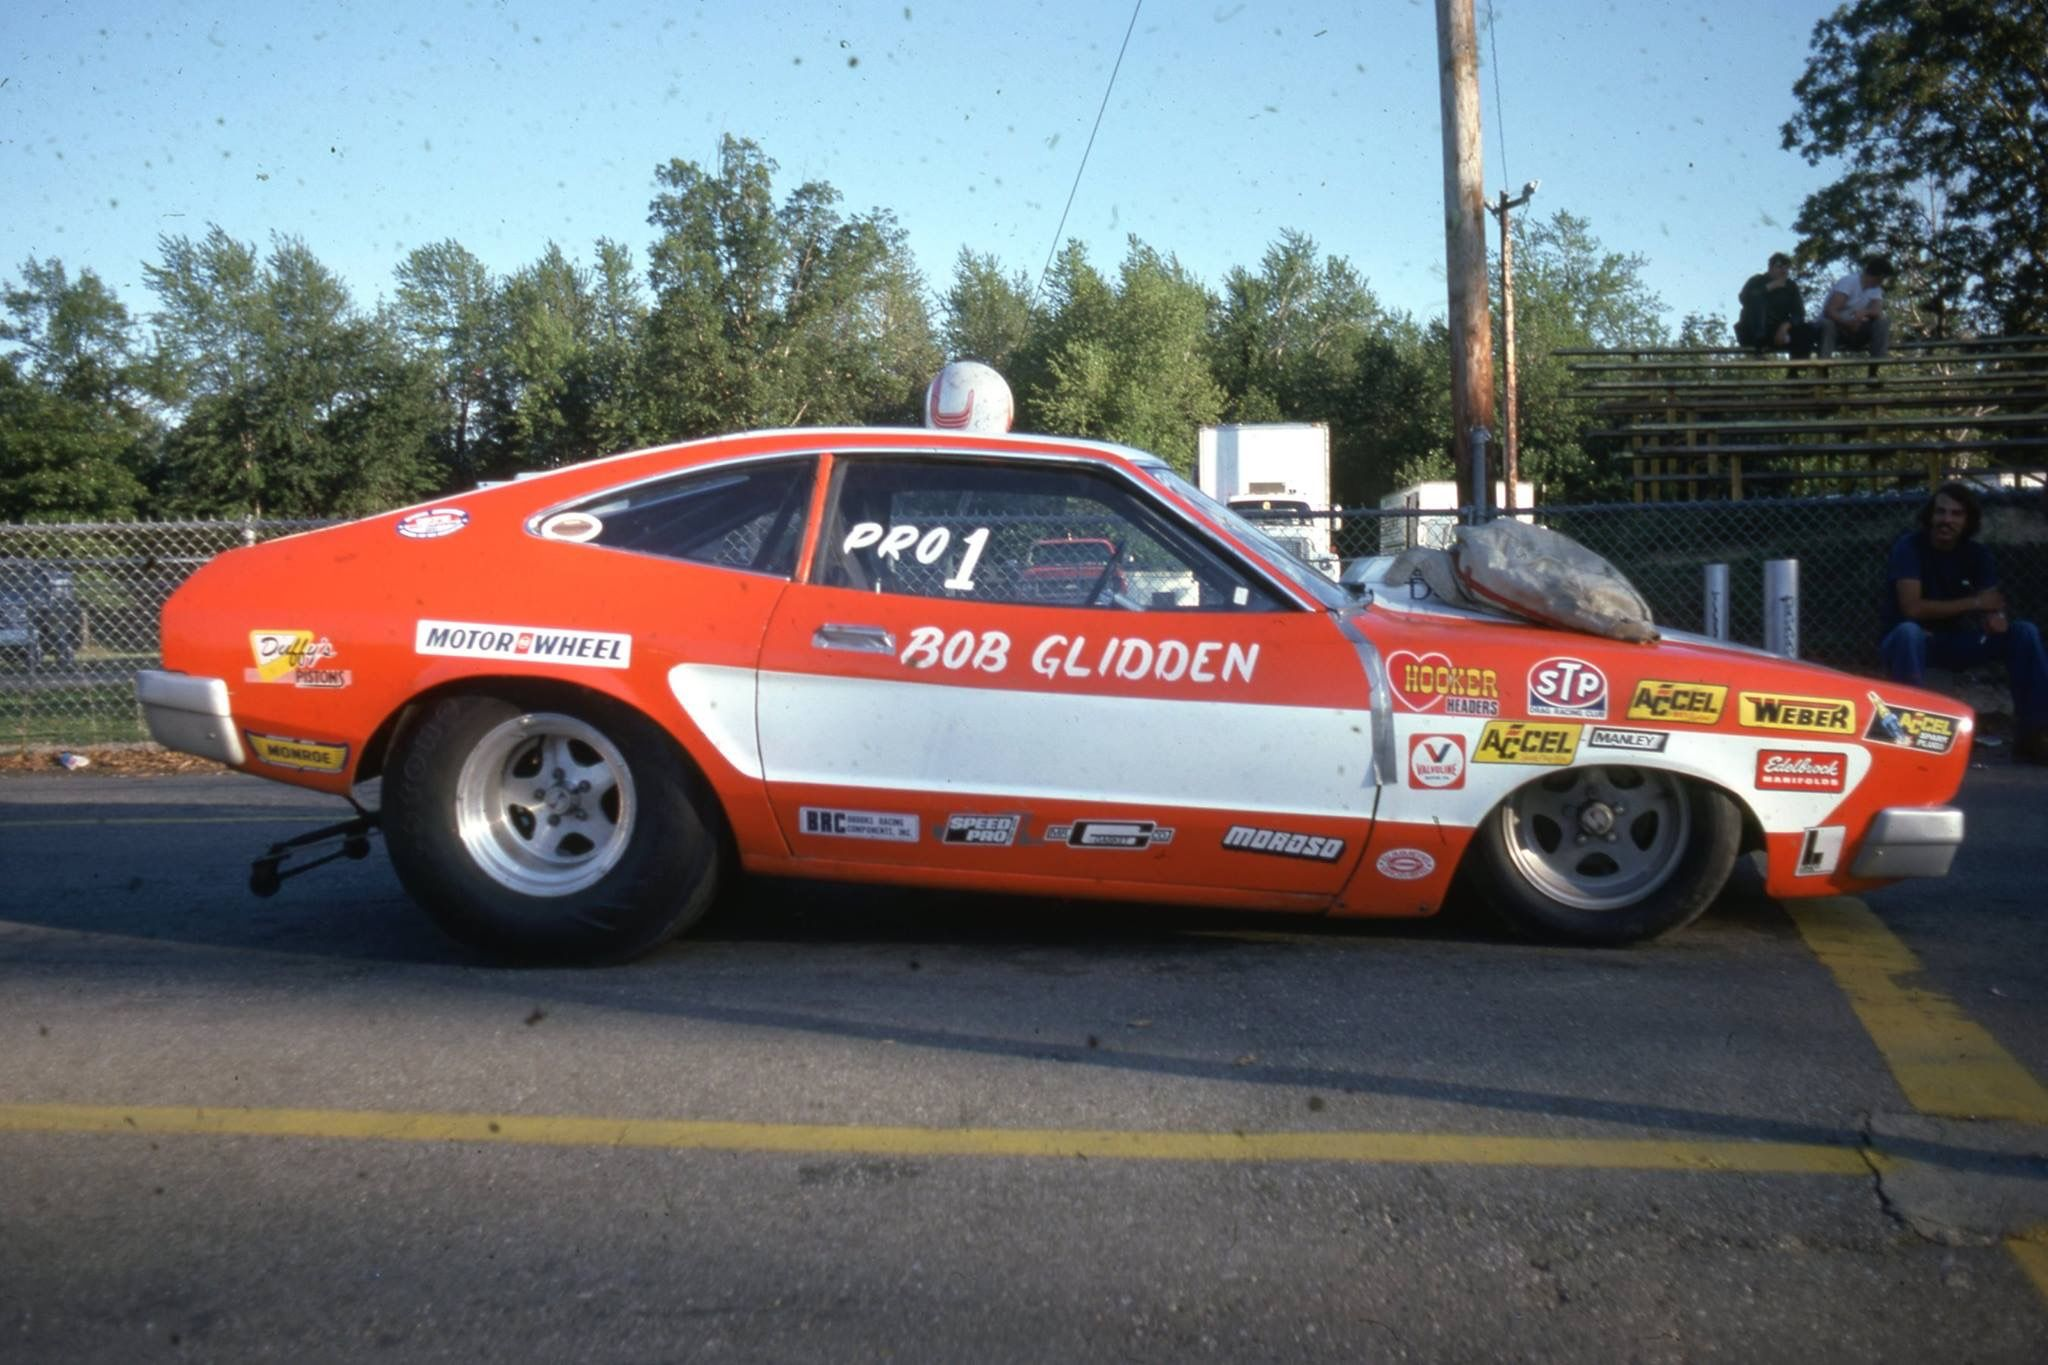 Pin By Clay Dean On Drag Queens Bob Glidden Ford Racing Drag Racing Cars